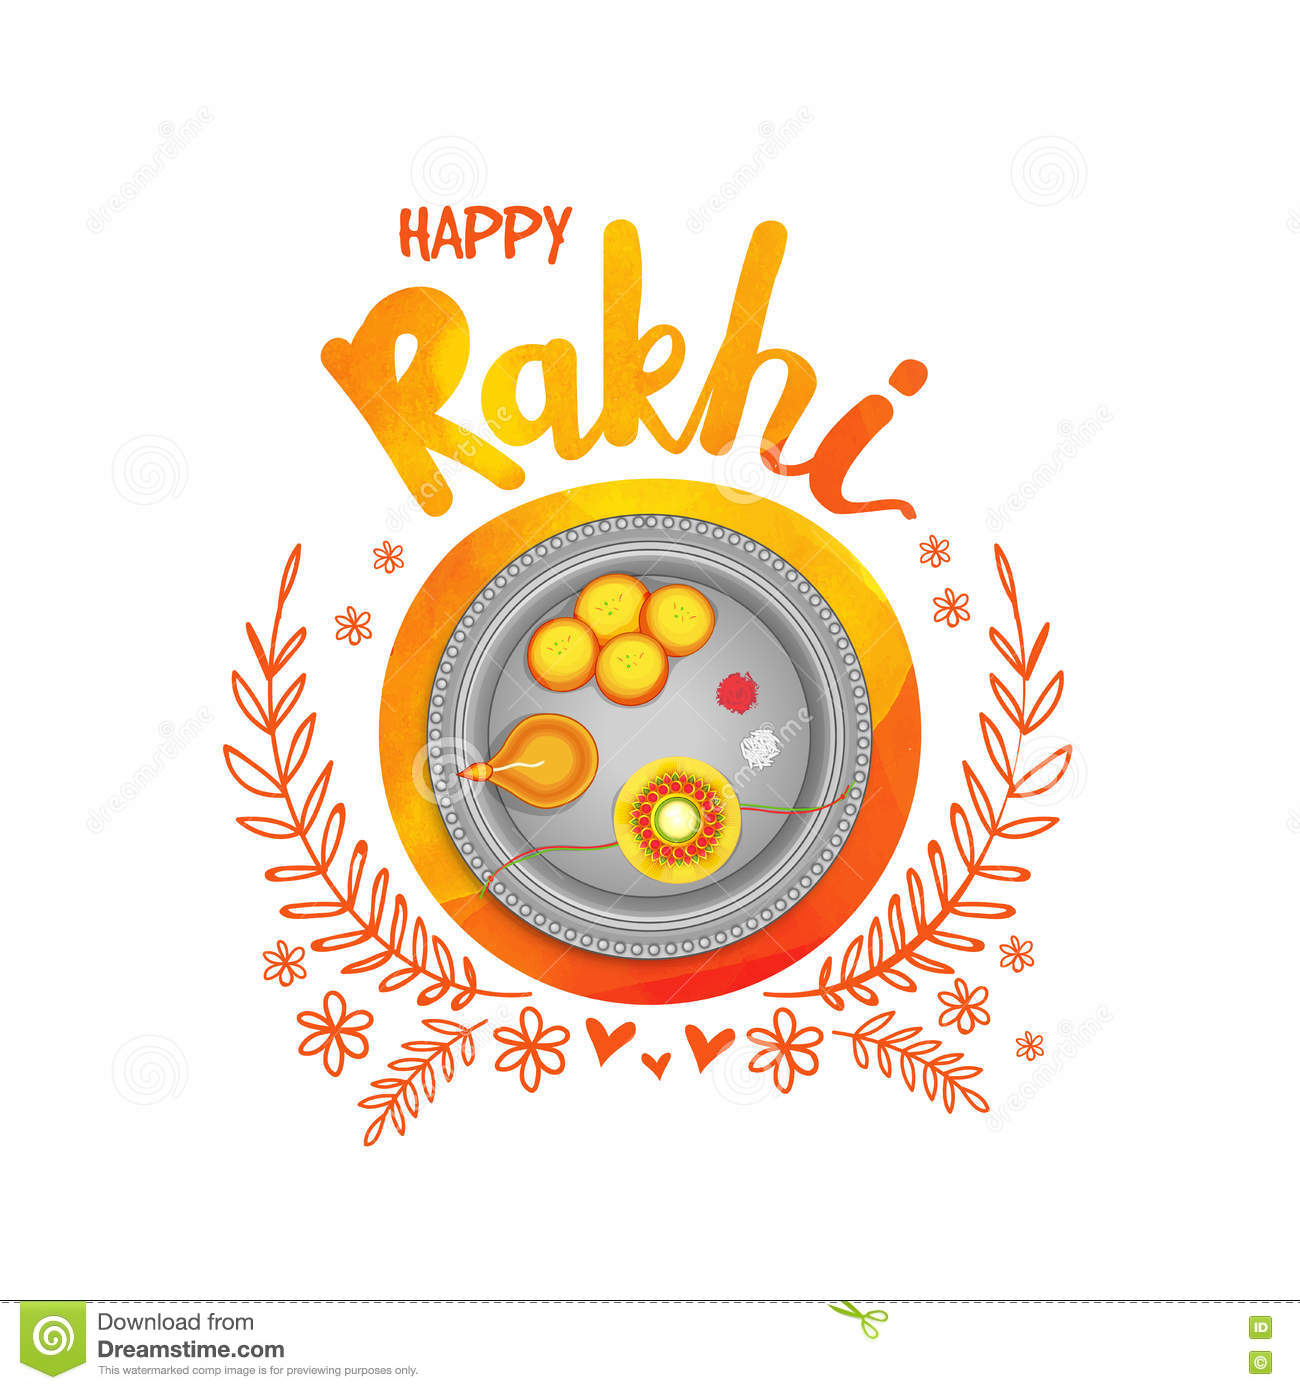 Greeting card for happy rakhi celebration stock illustration greeting card for happy rakhi celebration m4hsunfo